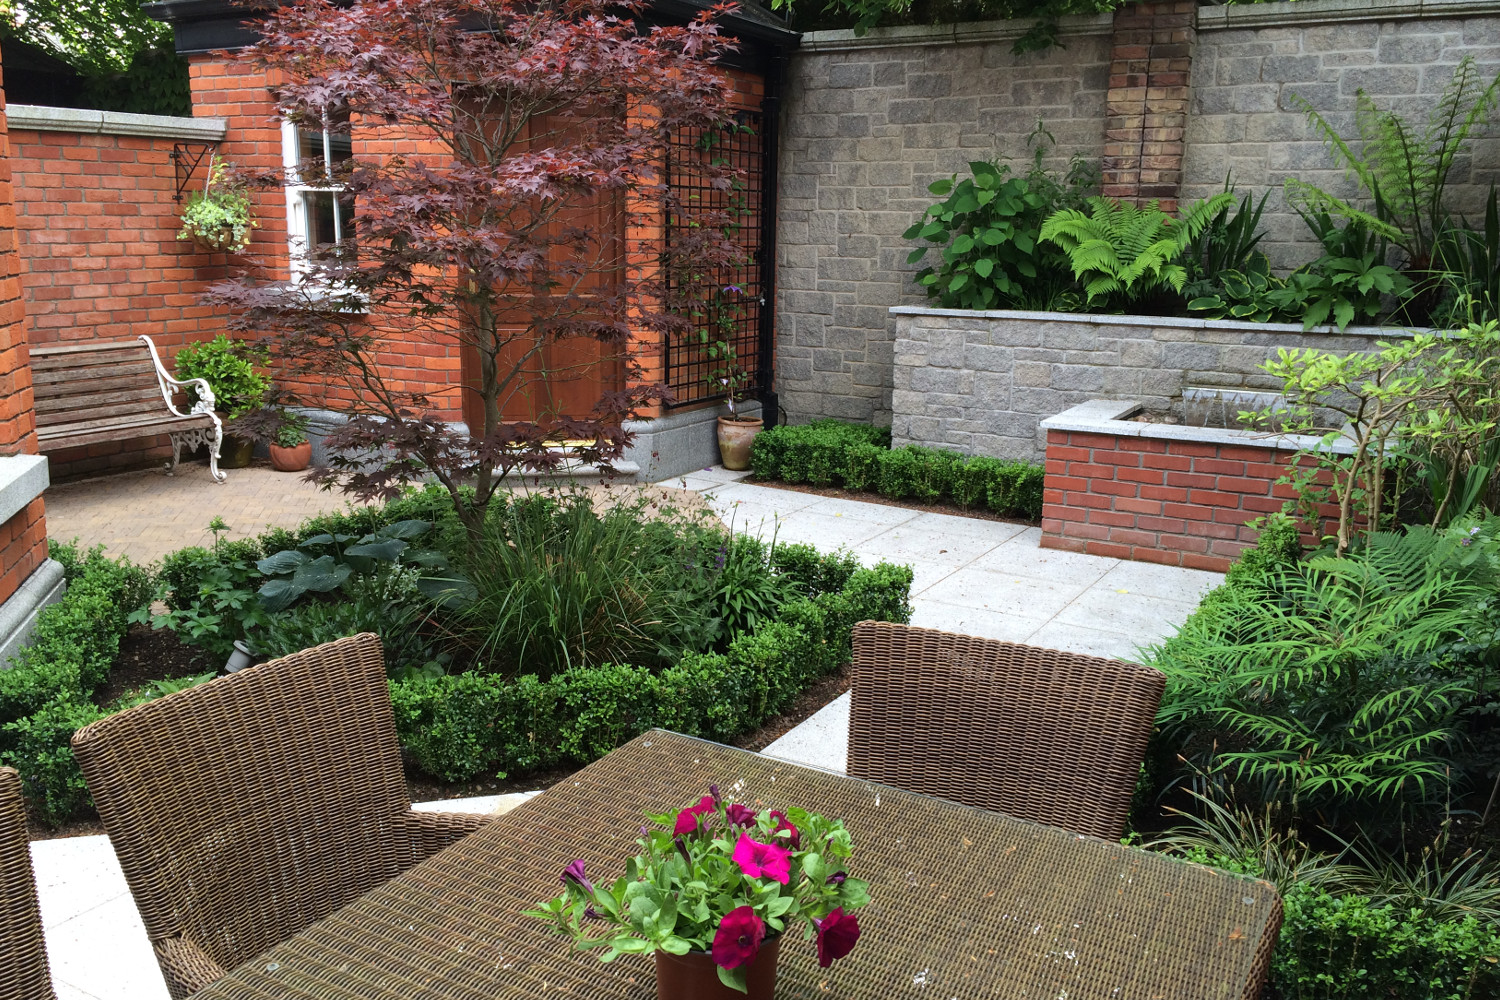 Cute courtyard garden in terenure dublin tim austen for Small garden courtyard designs